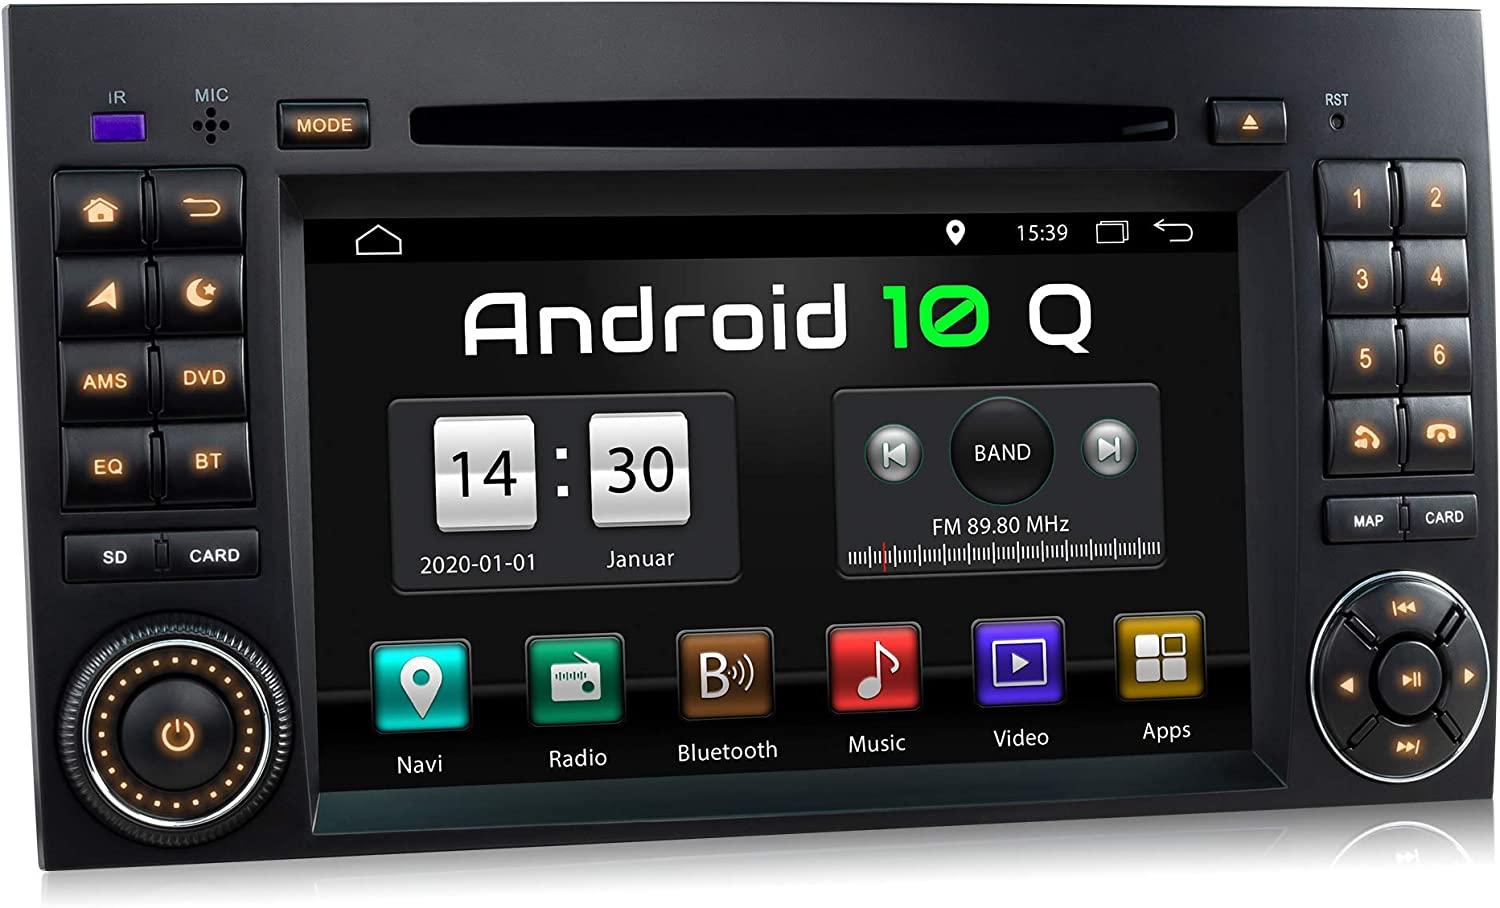 Xomax Xm D10za Car Radio With Android 10 Suitable For Mercedes A Class W169 B Class W245 Vito Viano Sprinter W906 I Gps Navigation Dvd Cd I Bluetooth 7 Inch Touch Screen Usb Sd Amazon De